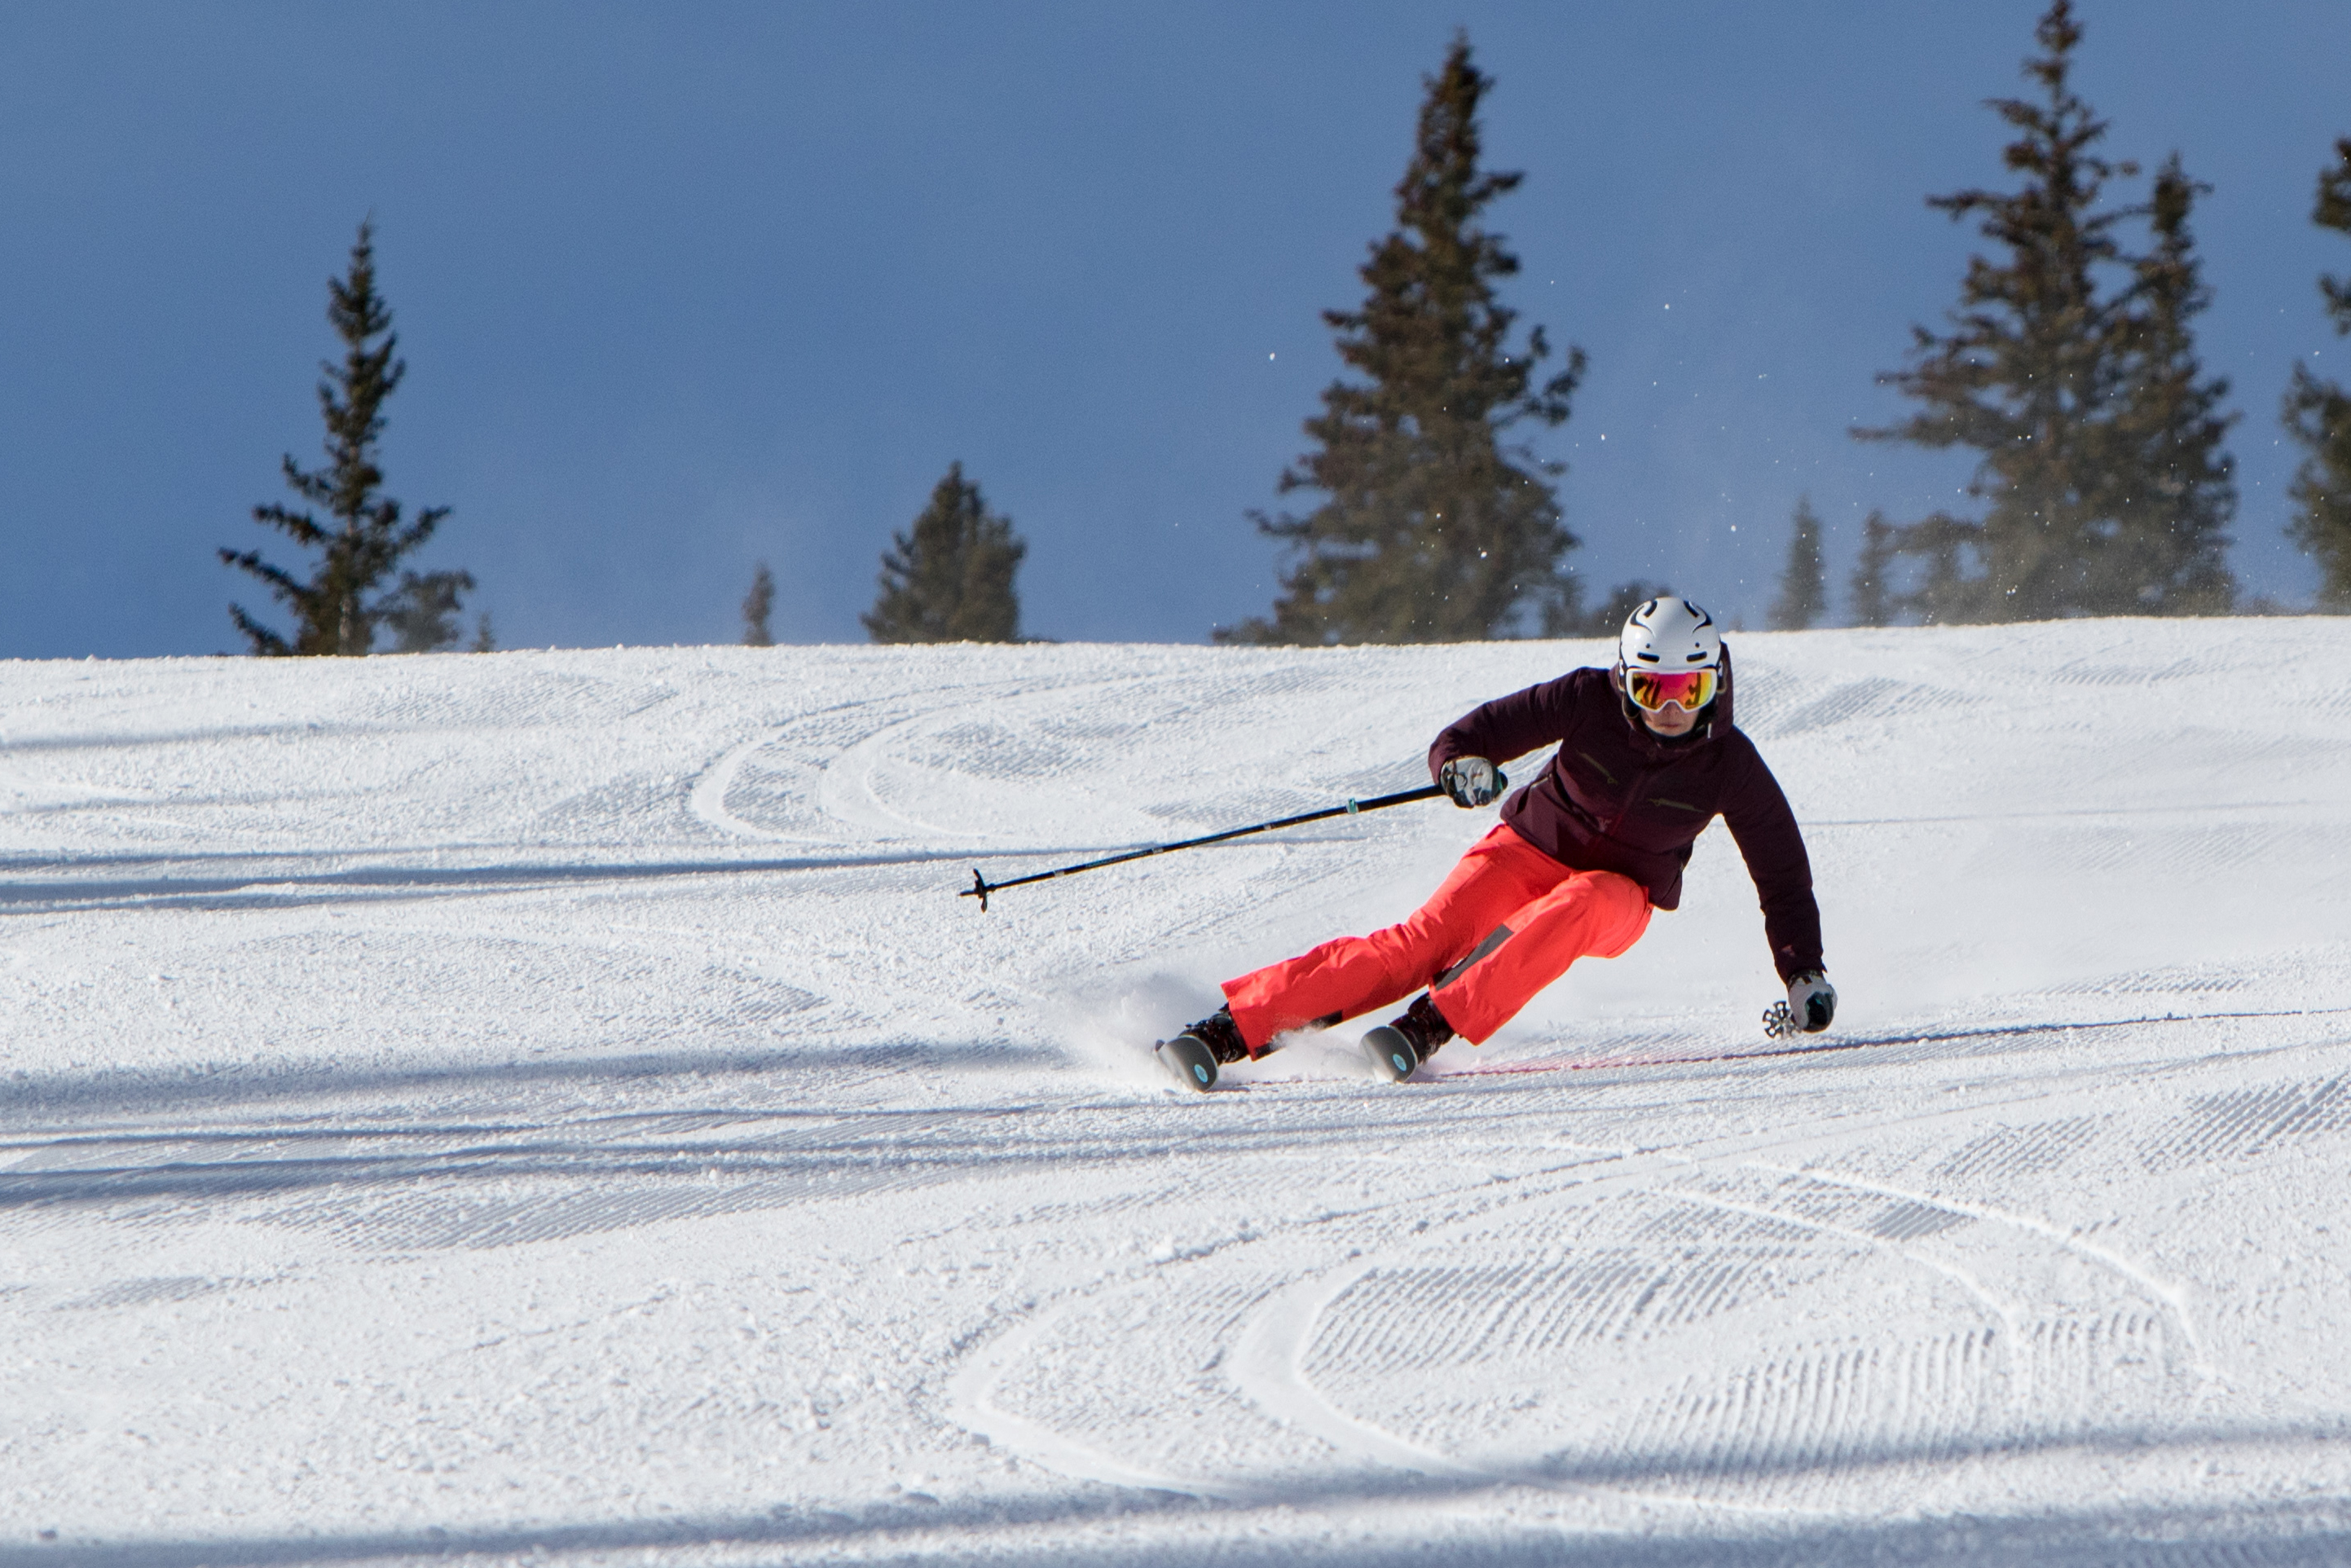 Skier carving turns